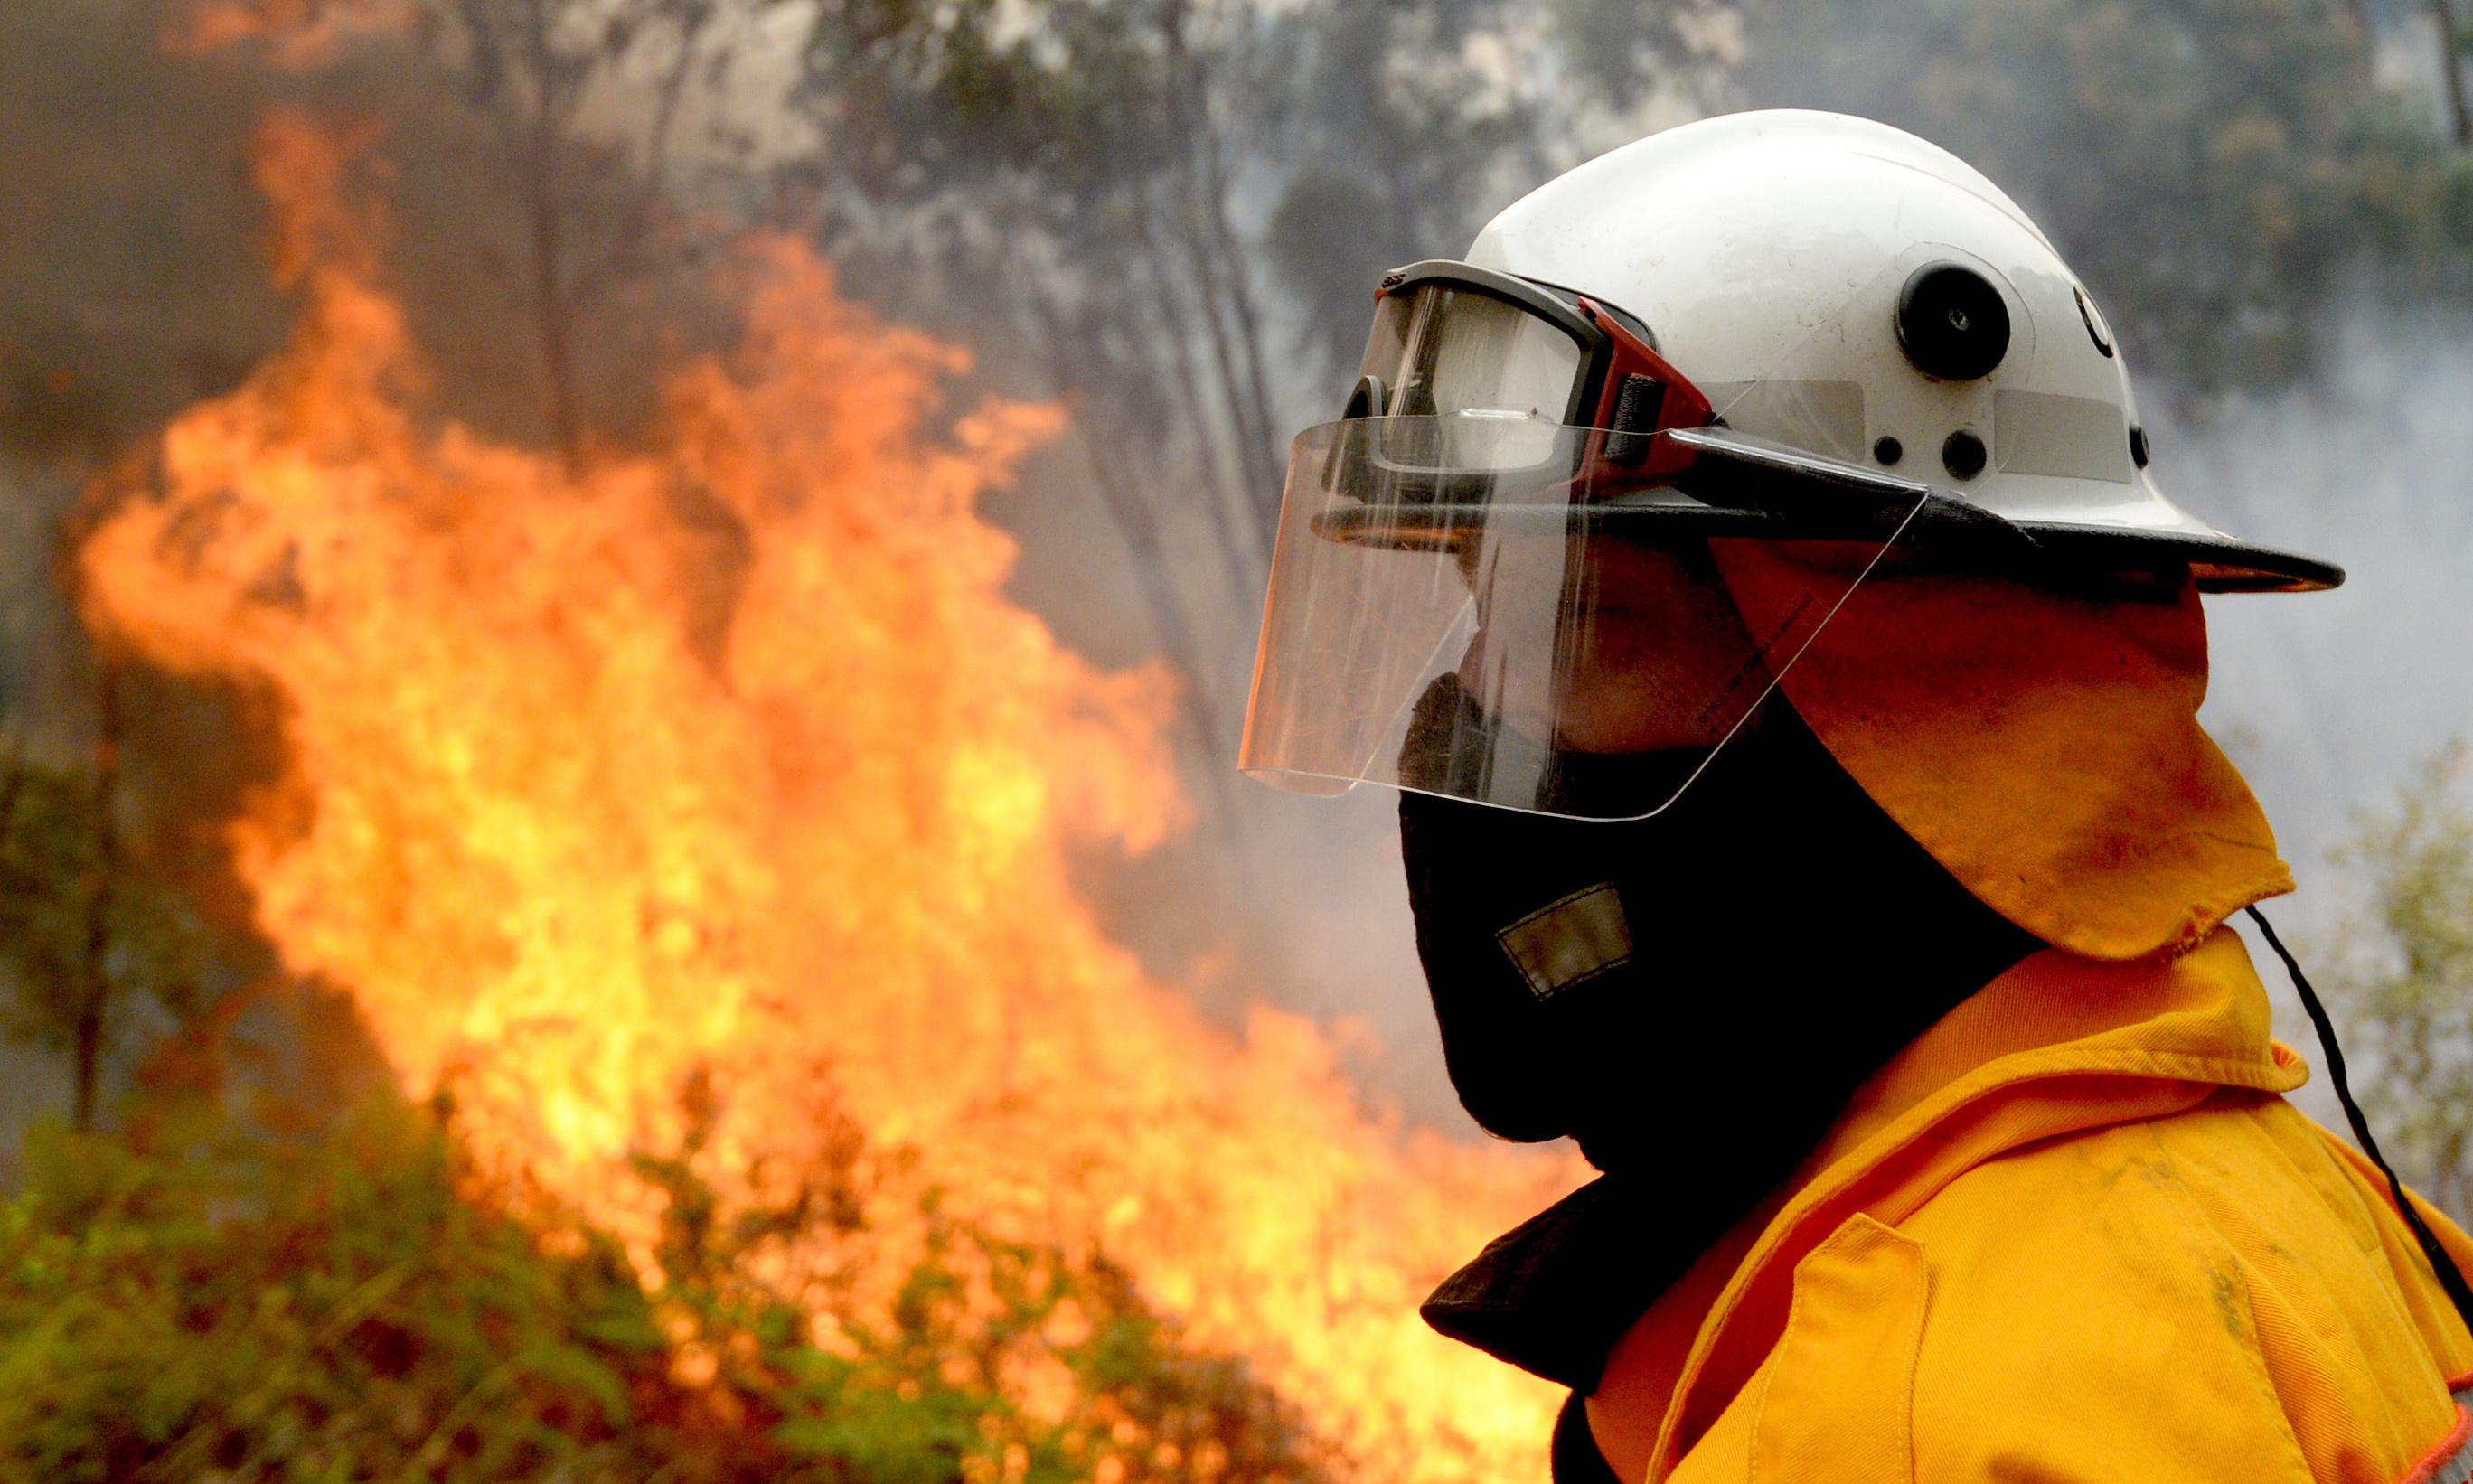 NSW and Qld fires: residents urged to flee bushfire near Toowoomba amid warning of 'bad days' ahead